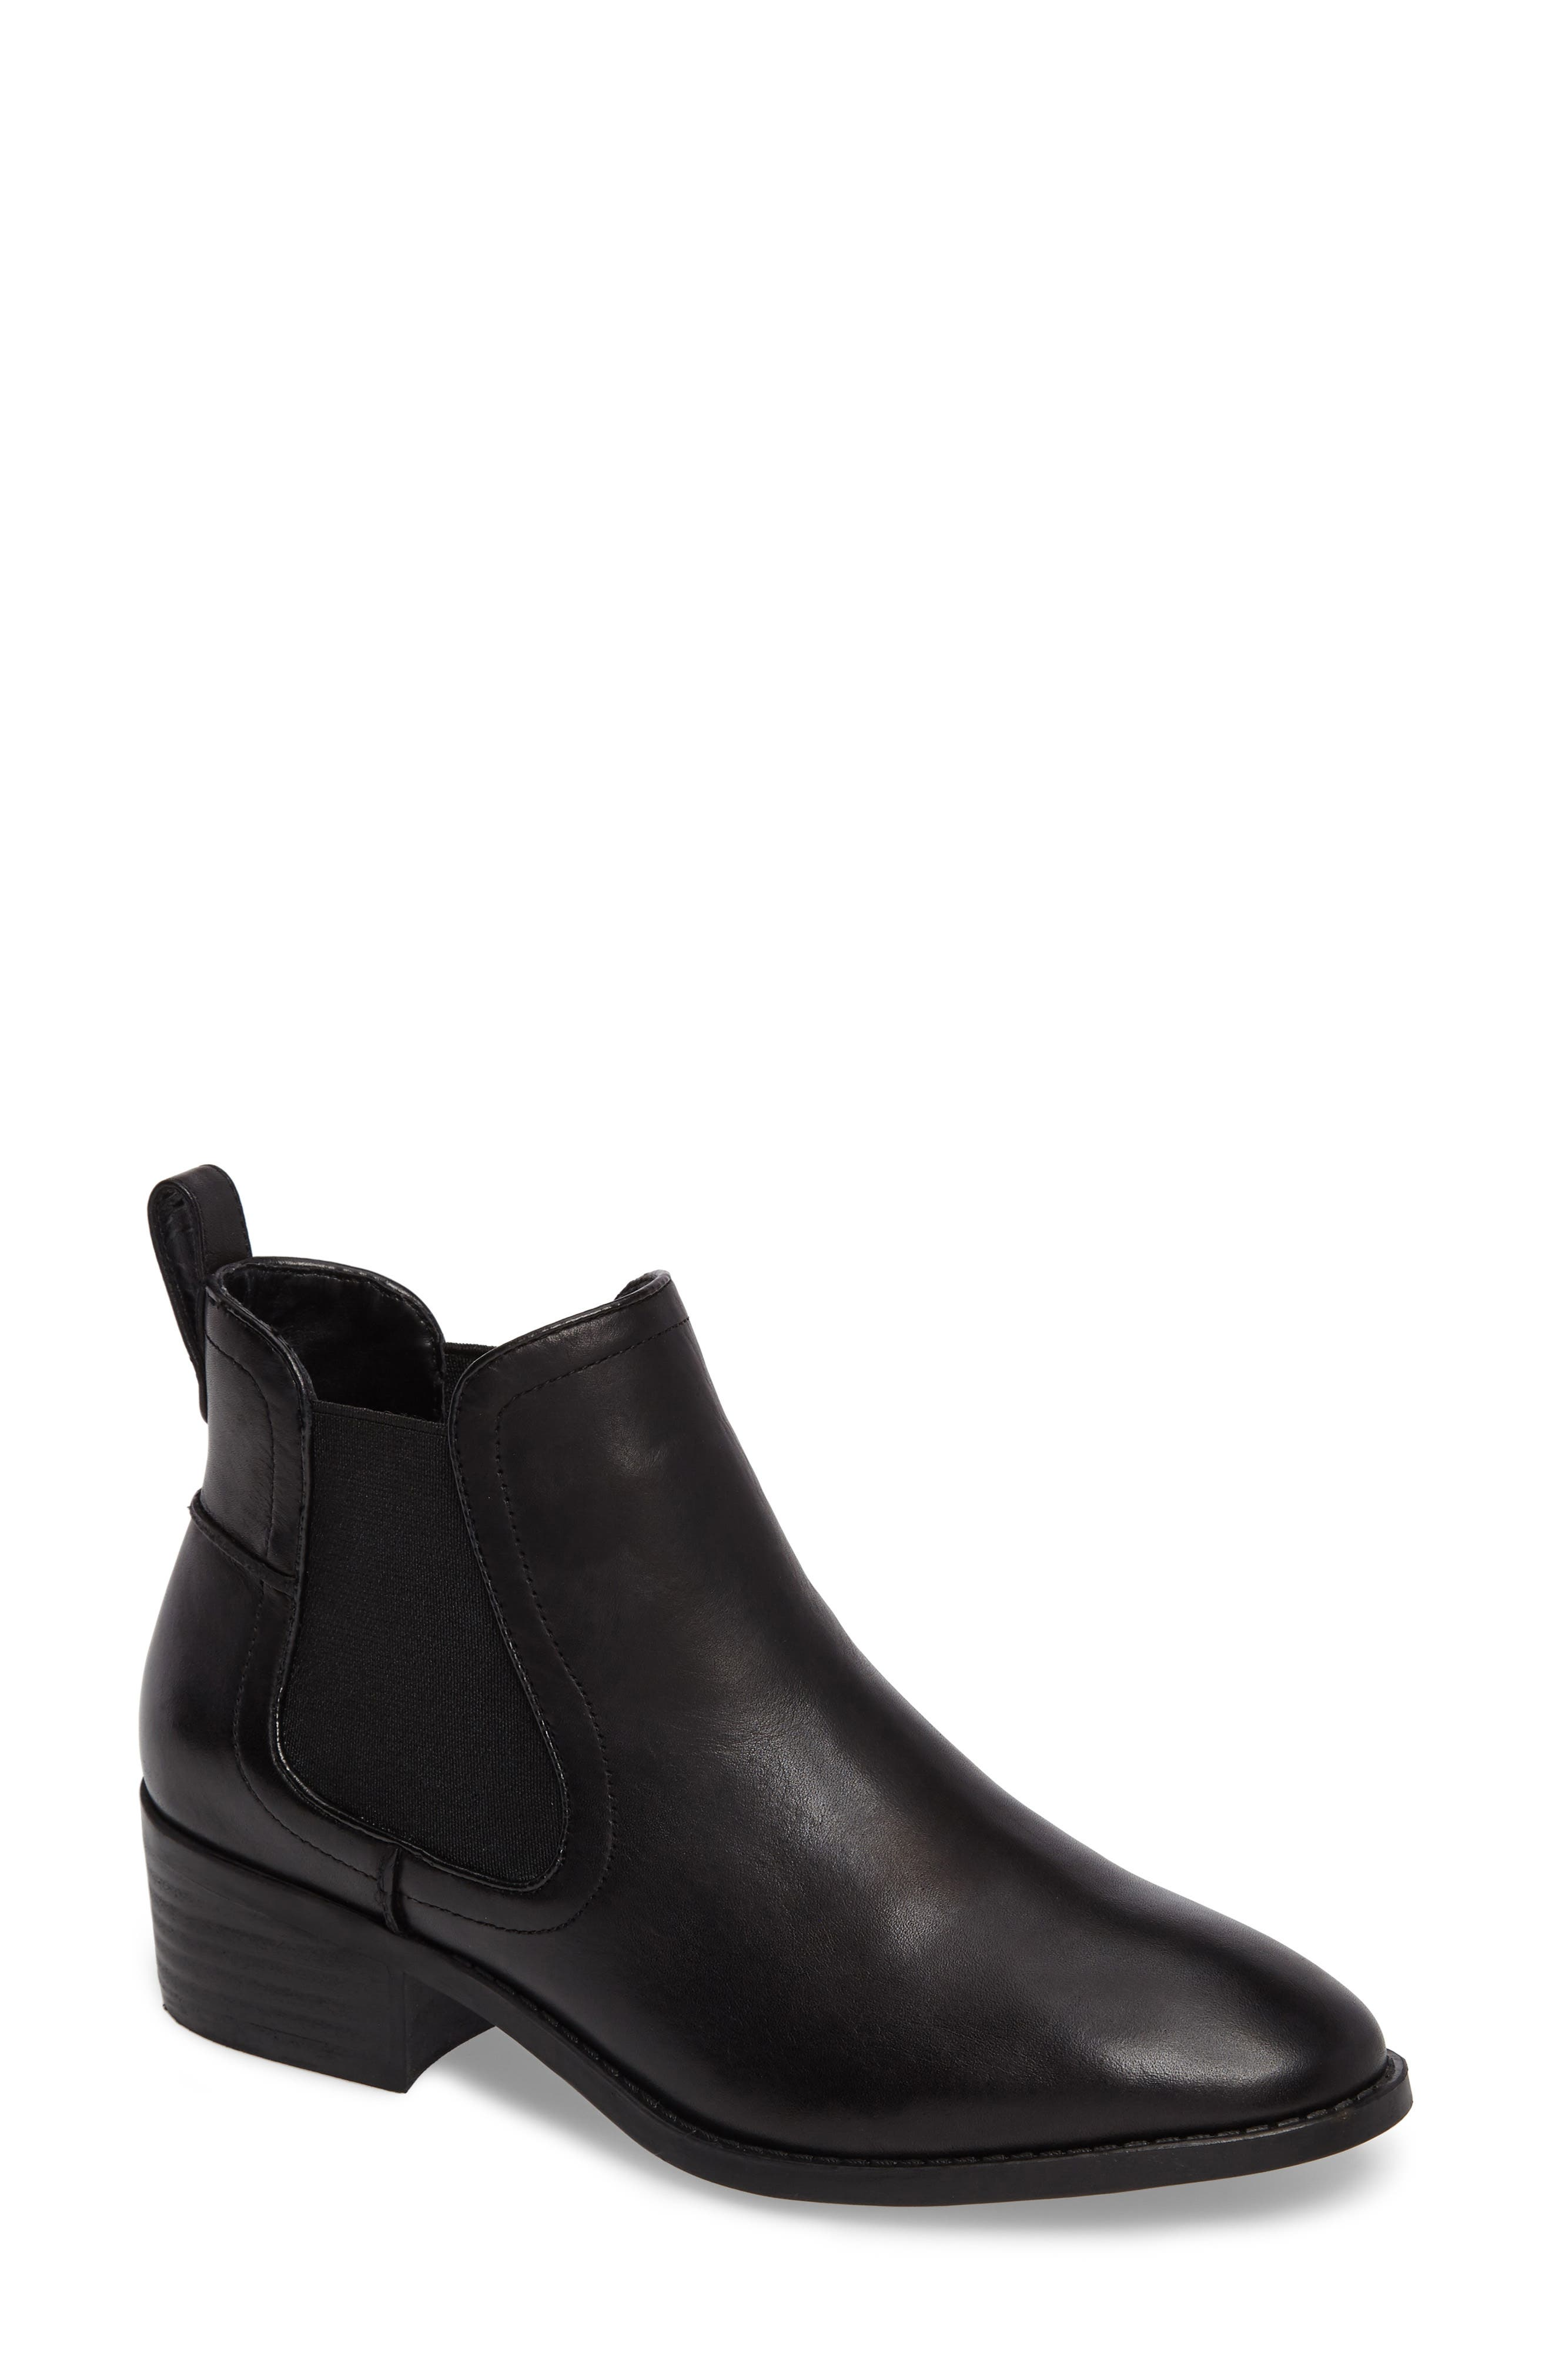 Dicey Chelsea Boot,                         Main,                         color, 001